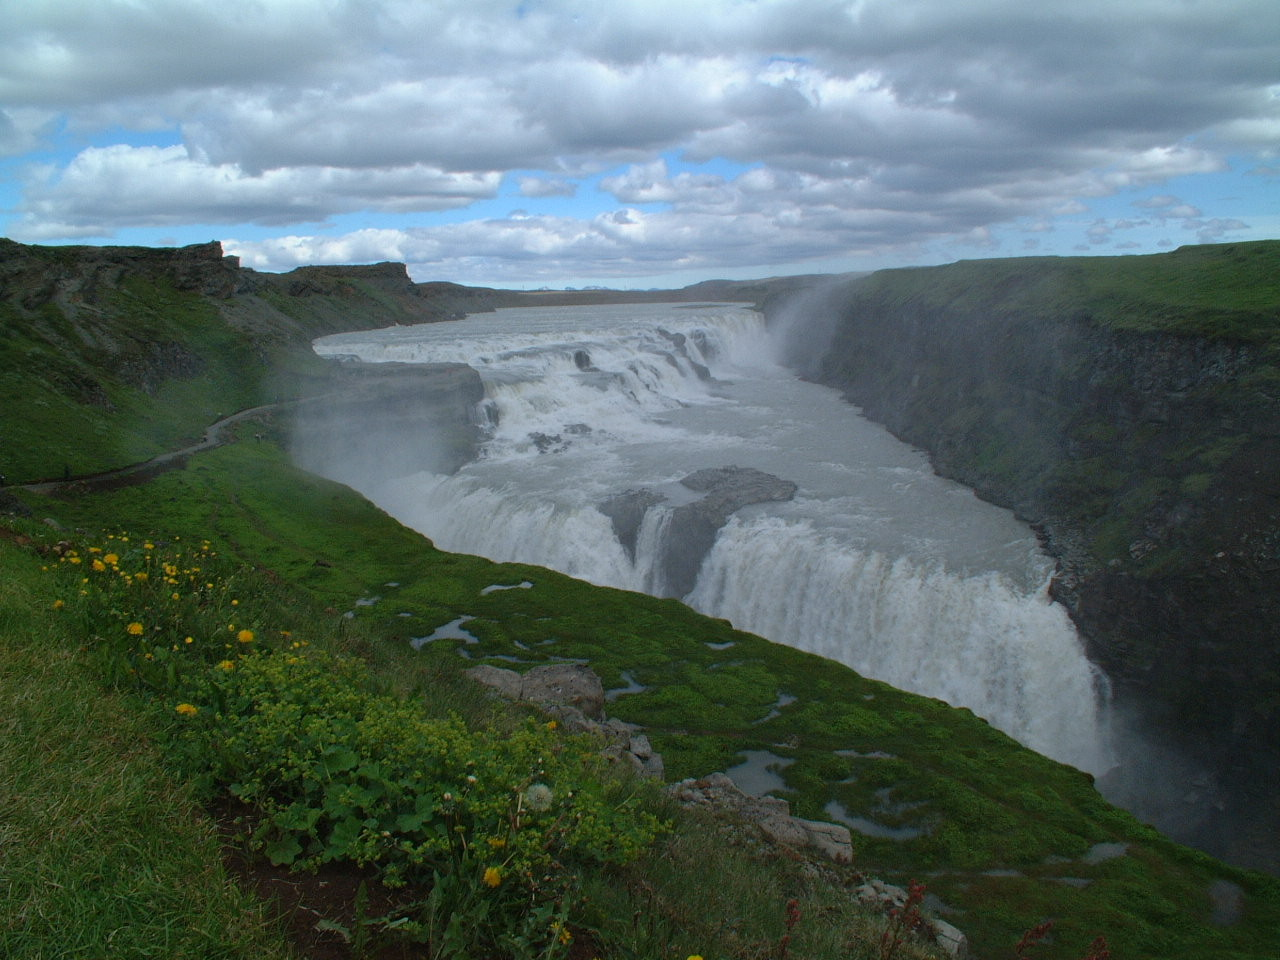 De Gulfoss waterval in IJsland.